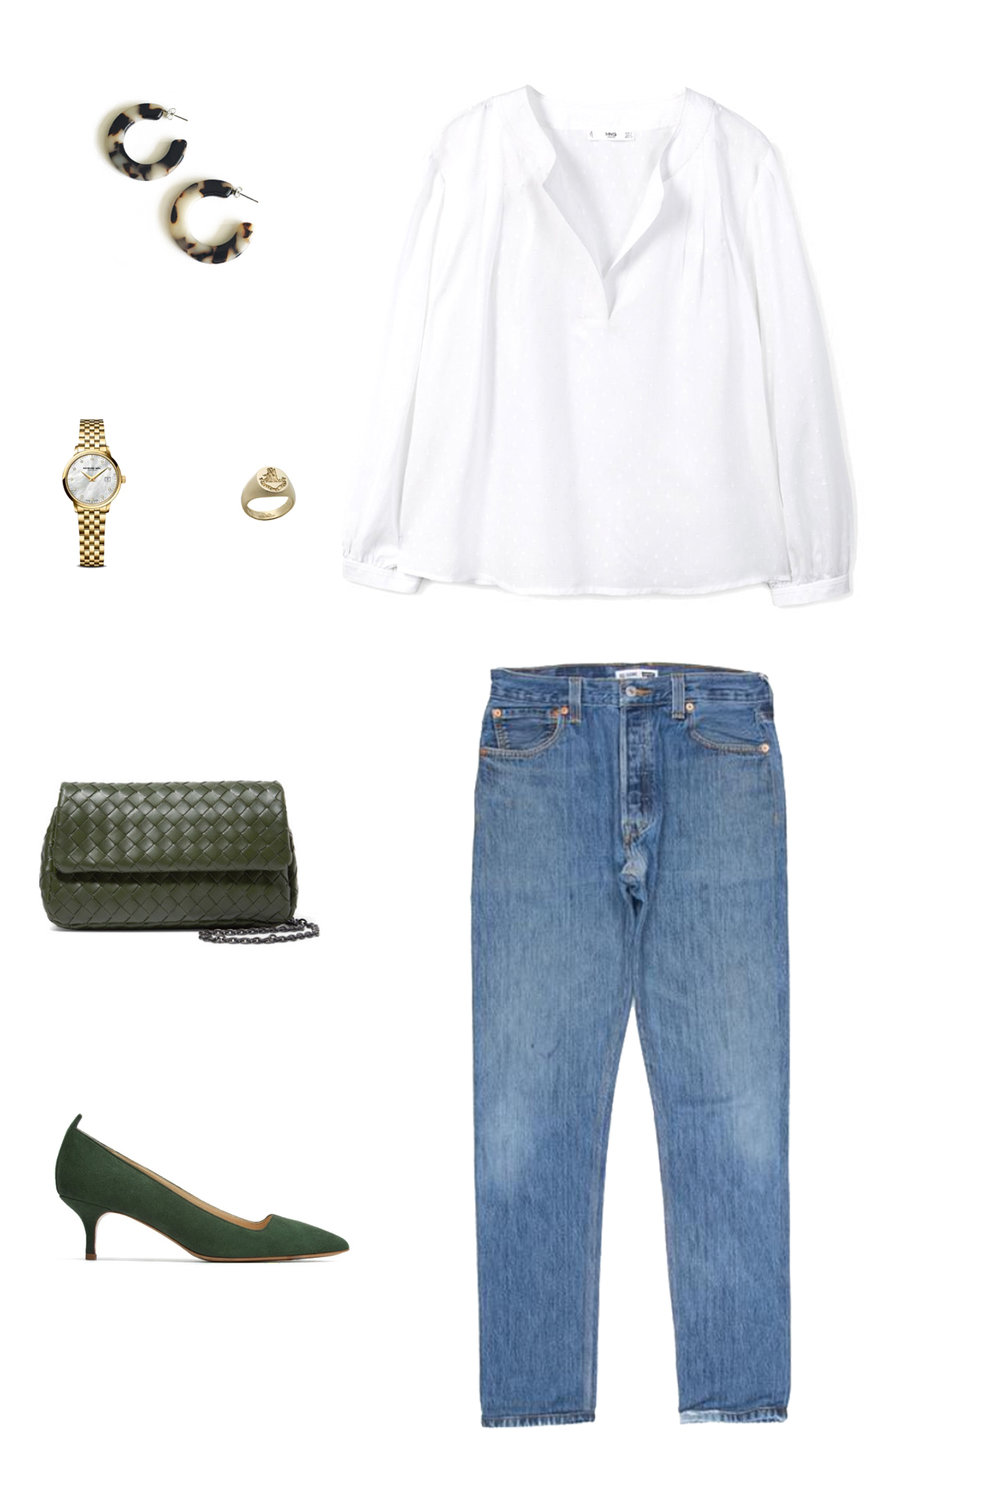 hm-white-shirt-redone-jeans-shop-machete-earrings-tortoise-shell-earrings.jpg